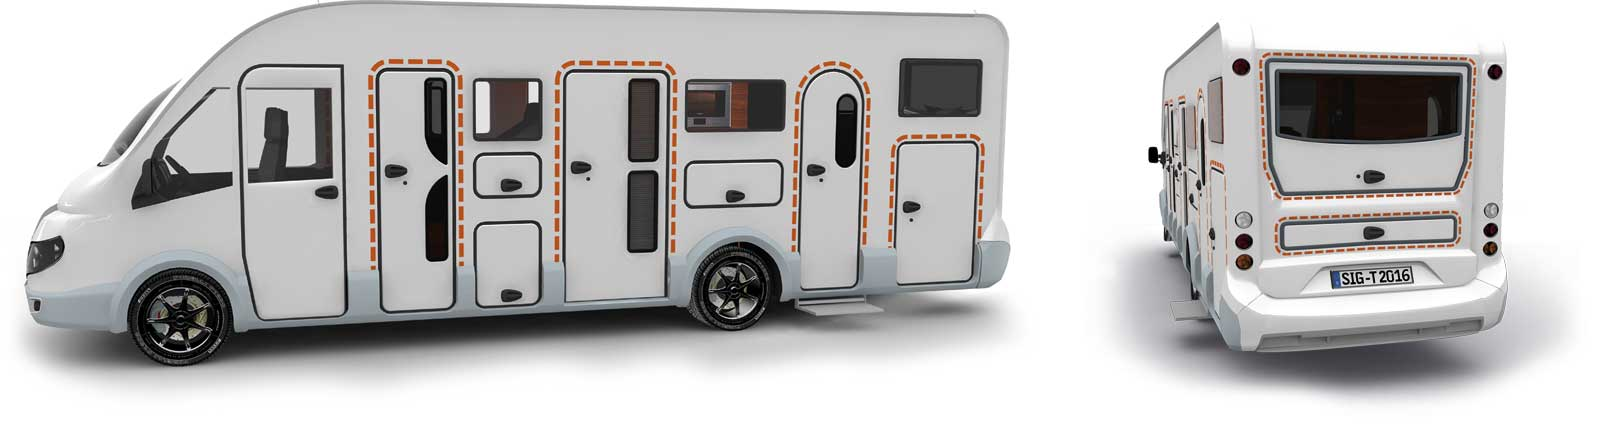 Satisfied tegos customers with Chausson caravans and RVs